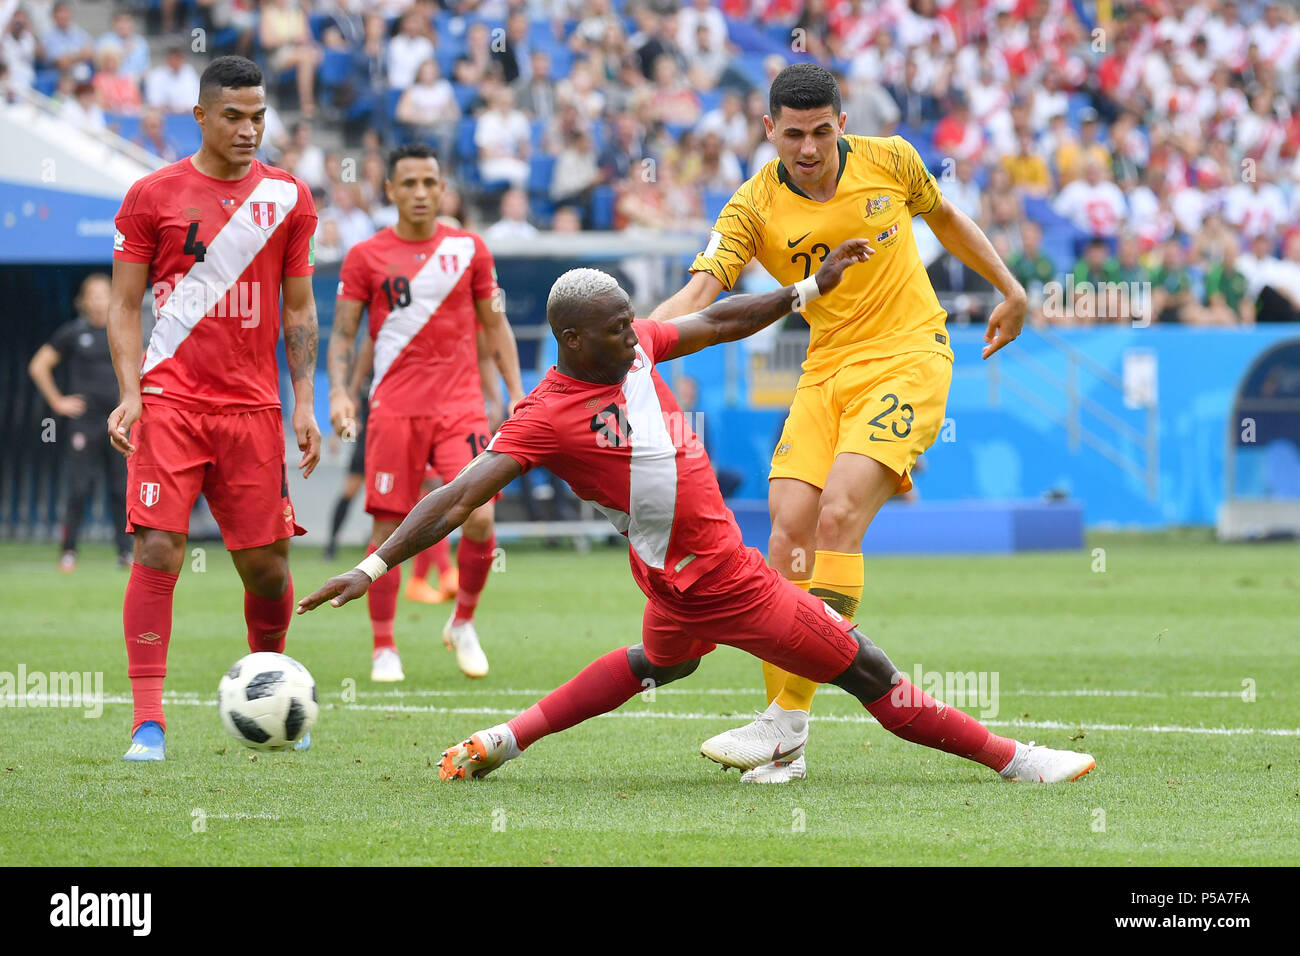 Sochi, Russland. 26th June, 2018. goalchance Tom ROGIC (AUS), action, duels versus Luis ADVINCULA (PER). Australia (AUS) - Peru (PER) 0-2, Preliminary Round, Group C, Game 38, on 26.06.2018 in SOCHI, Fisht Olymipic Stadium. Football World Cup 2018 in Russia from 14.06. - 15.07.2018. | usage worldwide Credit: dpa/Alamy Live News - Stock Image